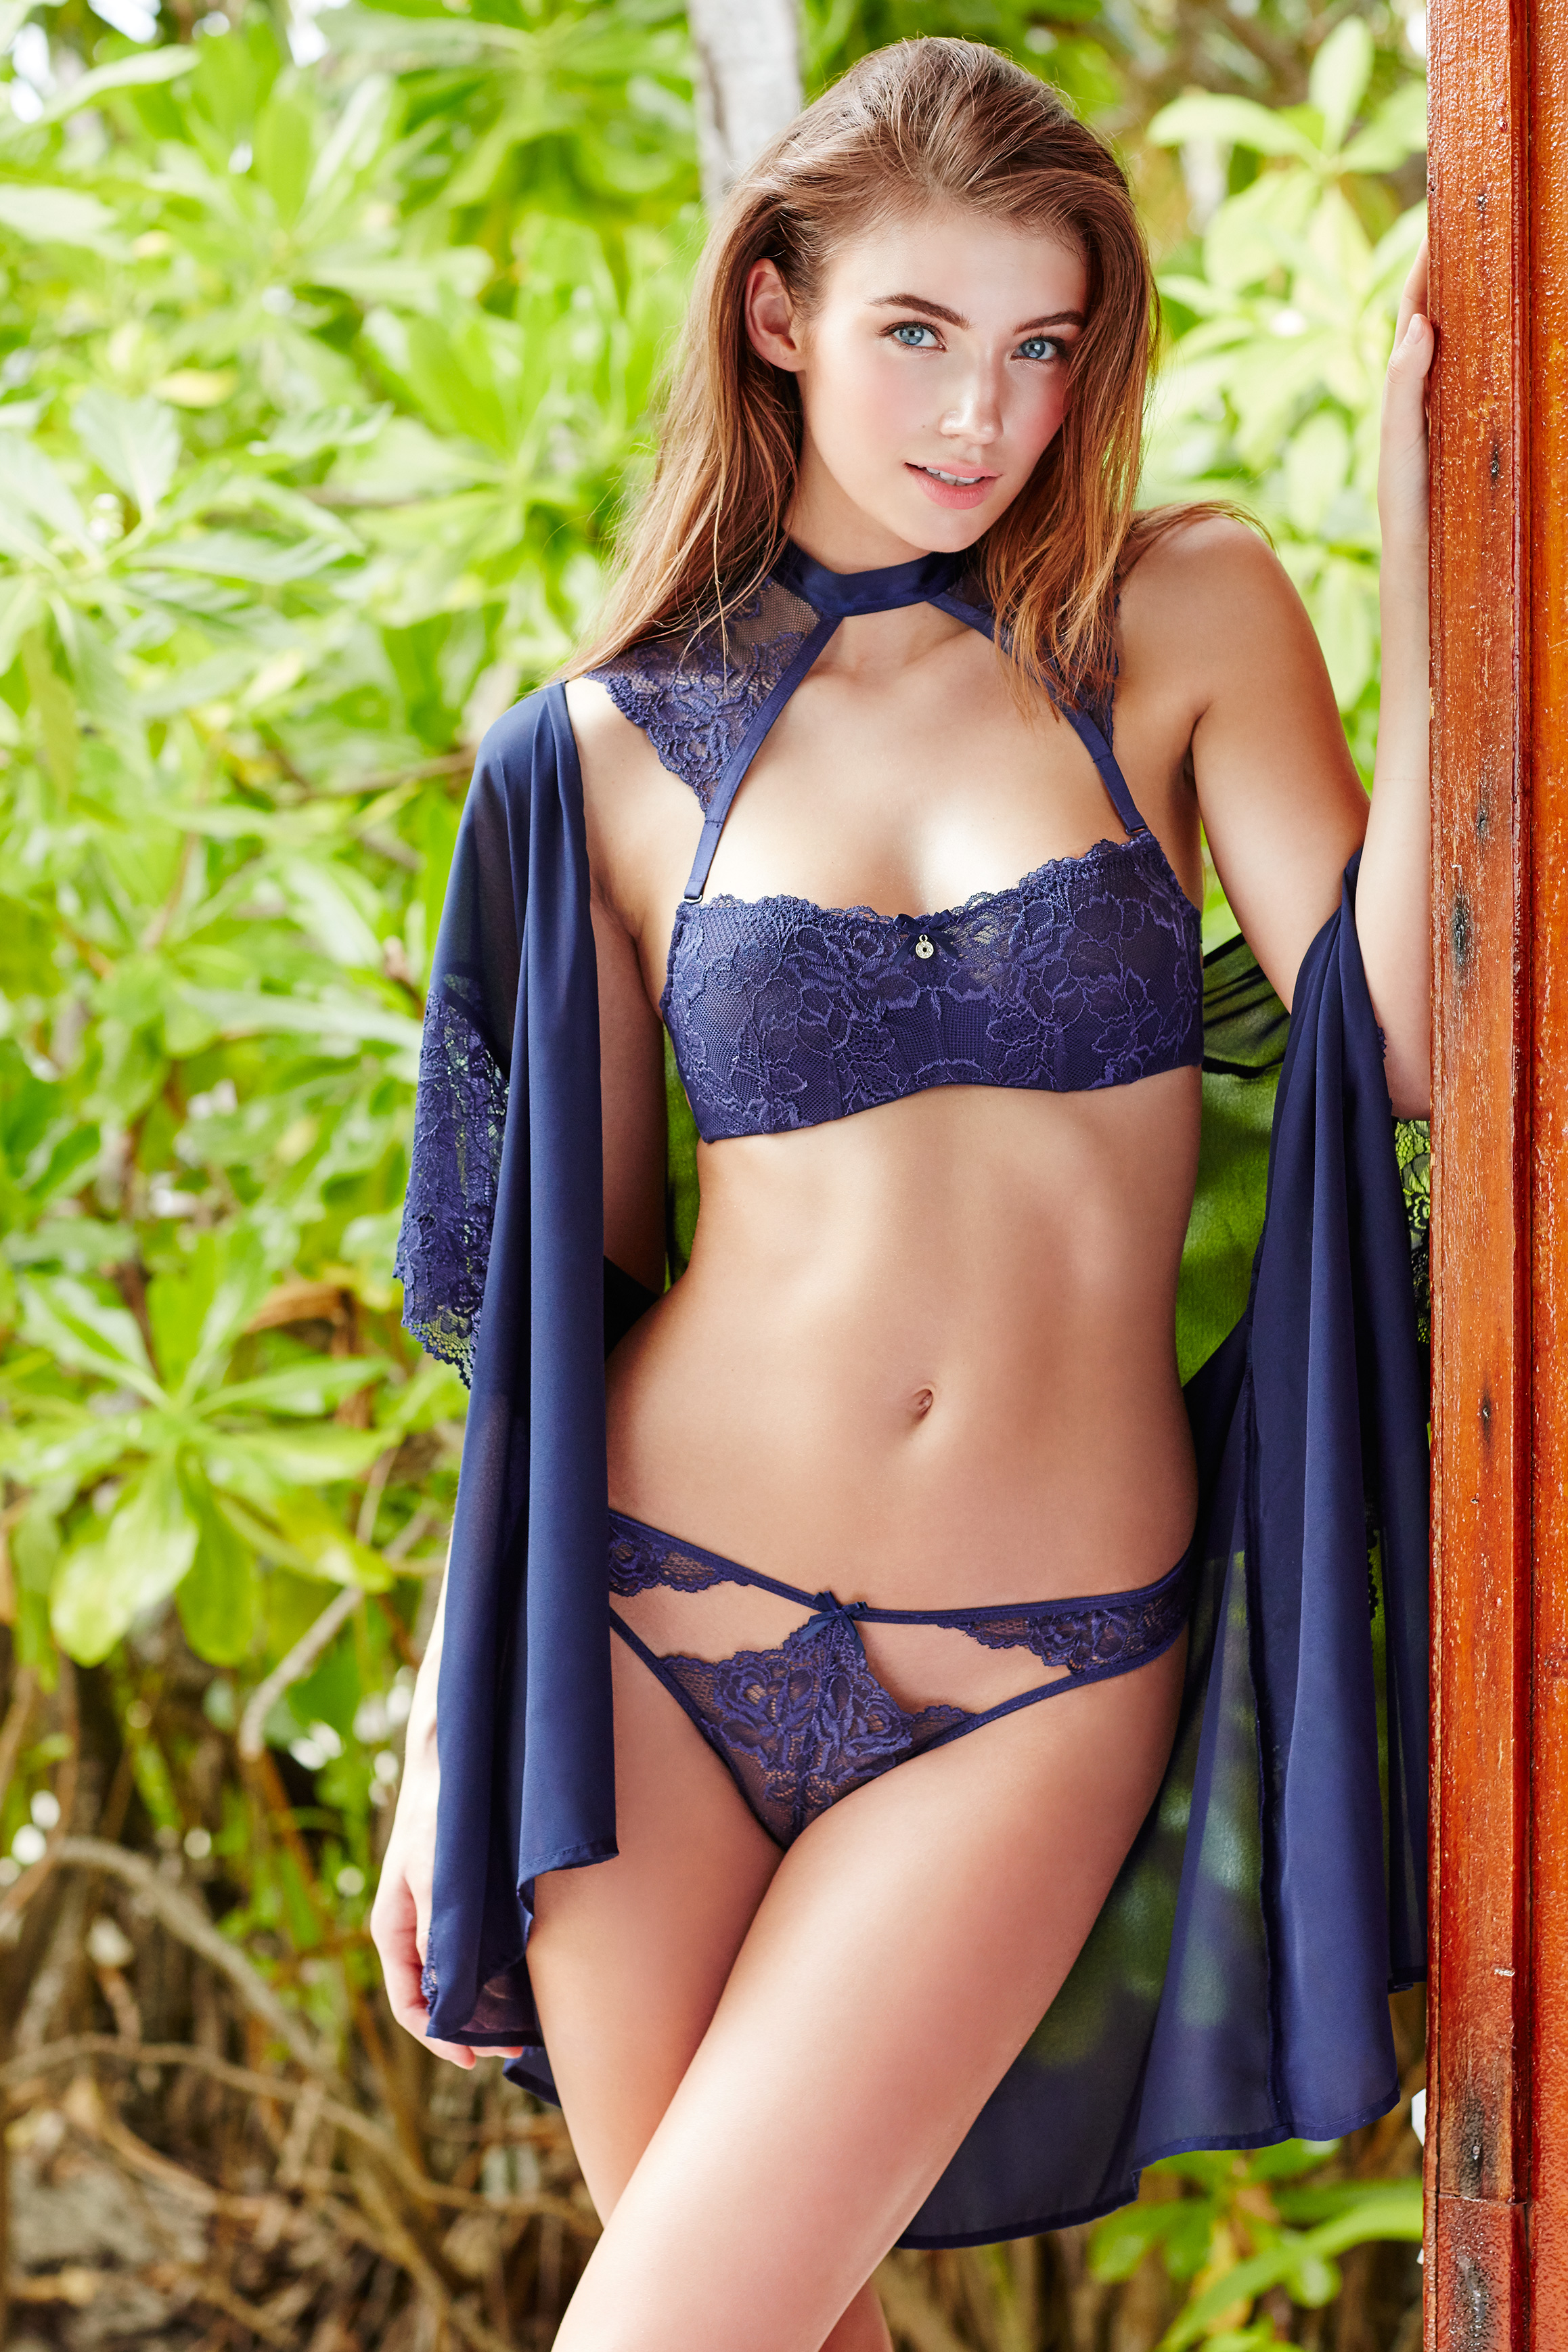 YAMAMAY_MARER_2016_Day-6_02_0119